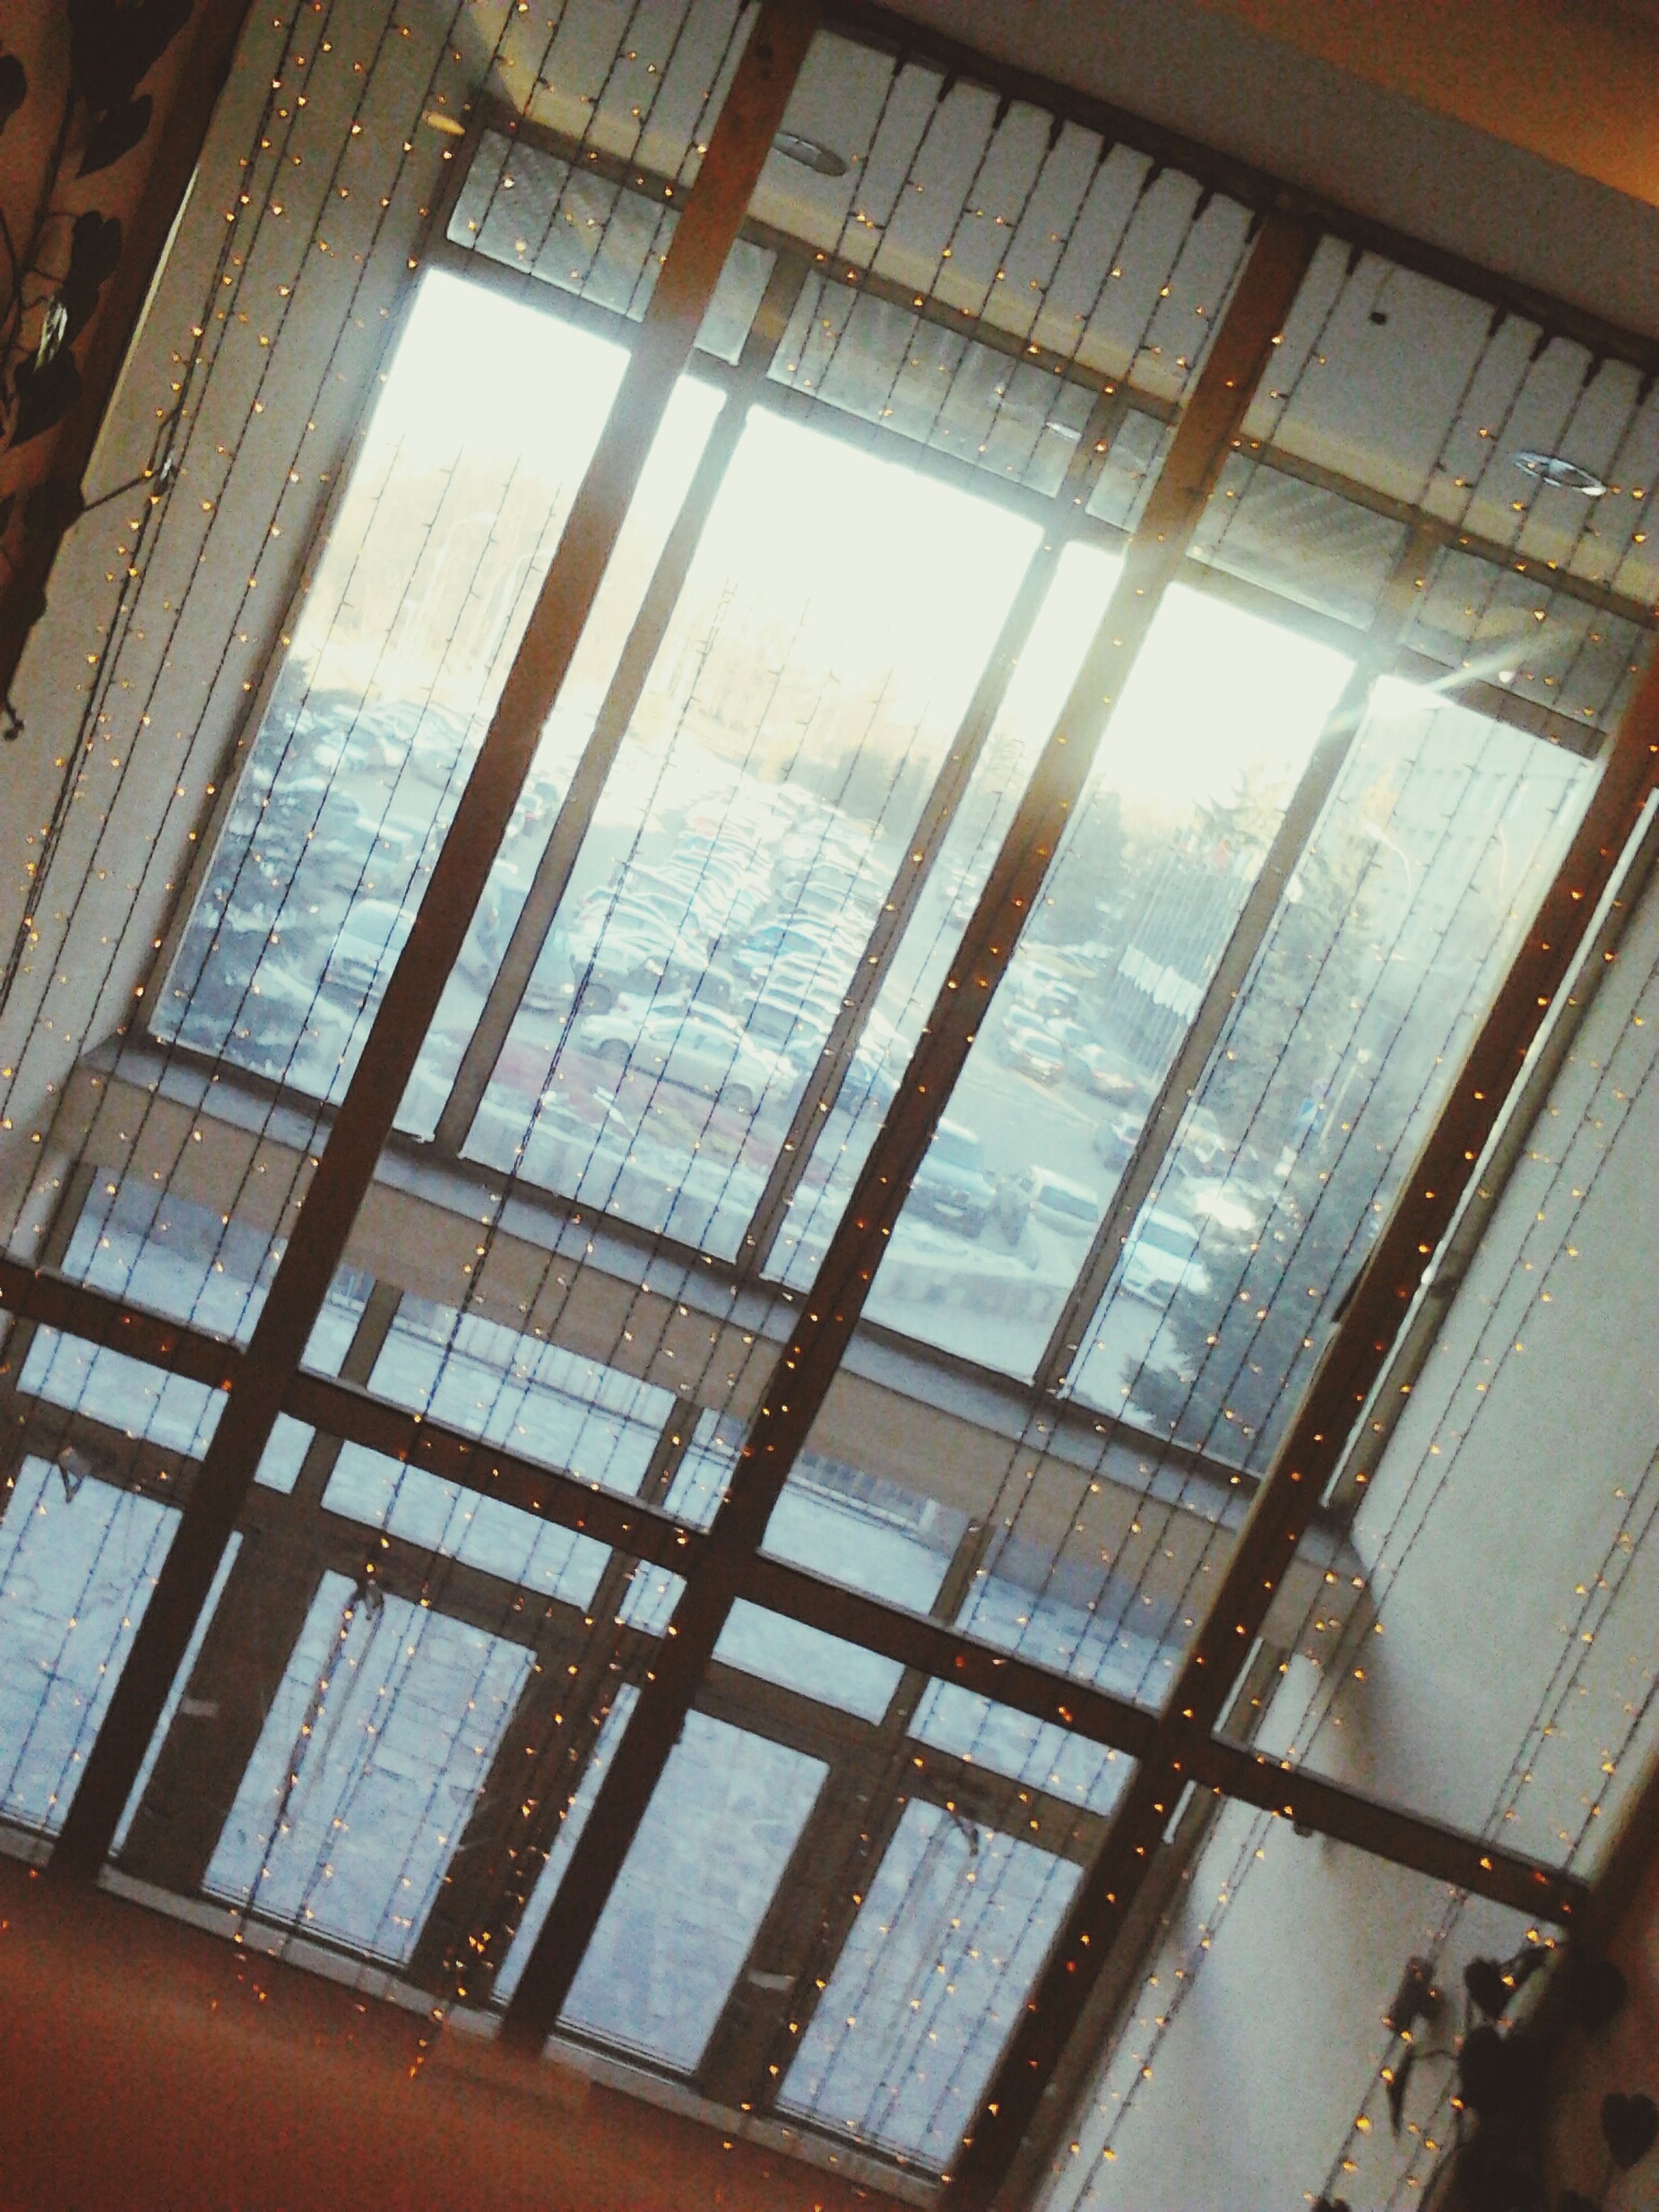 indoors, window, glass - material, transparent, architecture, built structure, ceiling, glass, sky, sunlight, low angle view, day, reflection, no people, modern, building, skylight, looking through window, water, interior